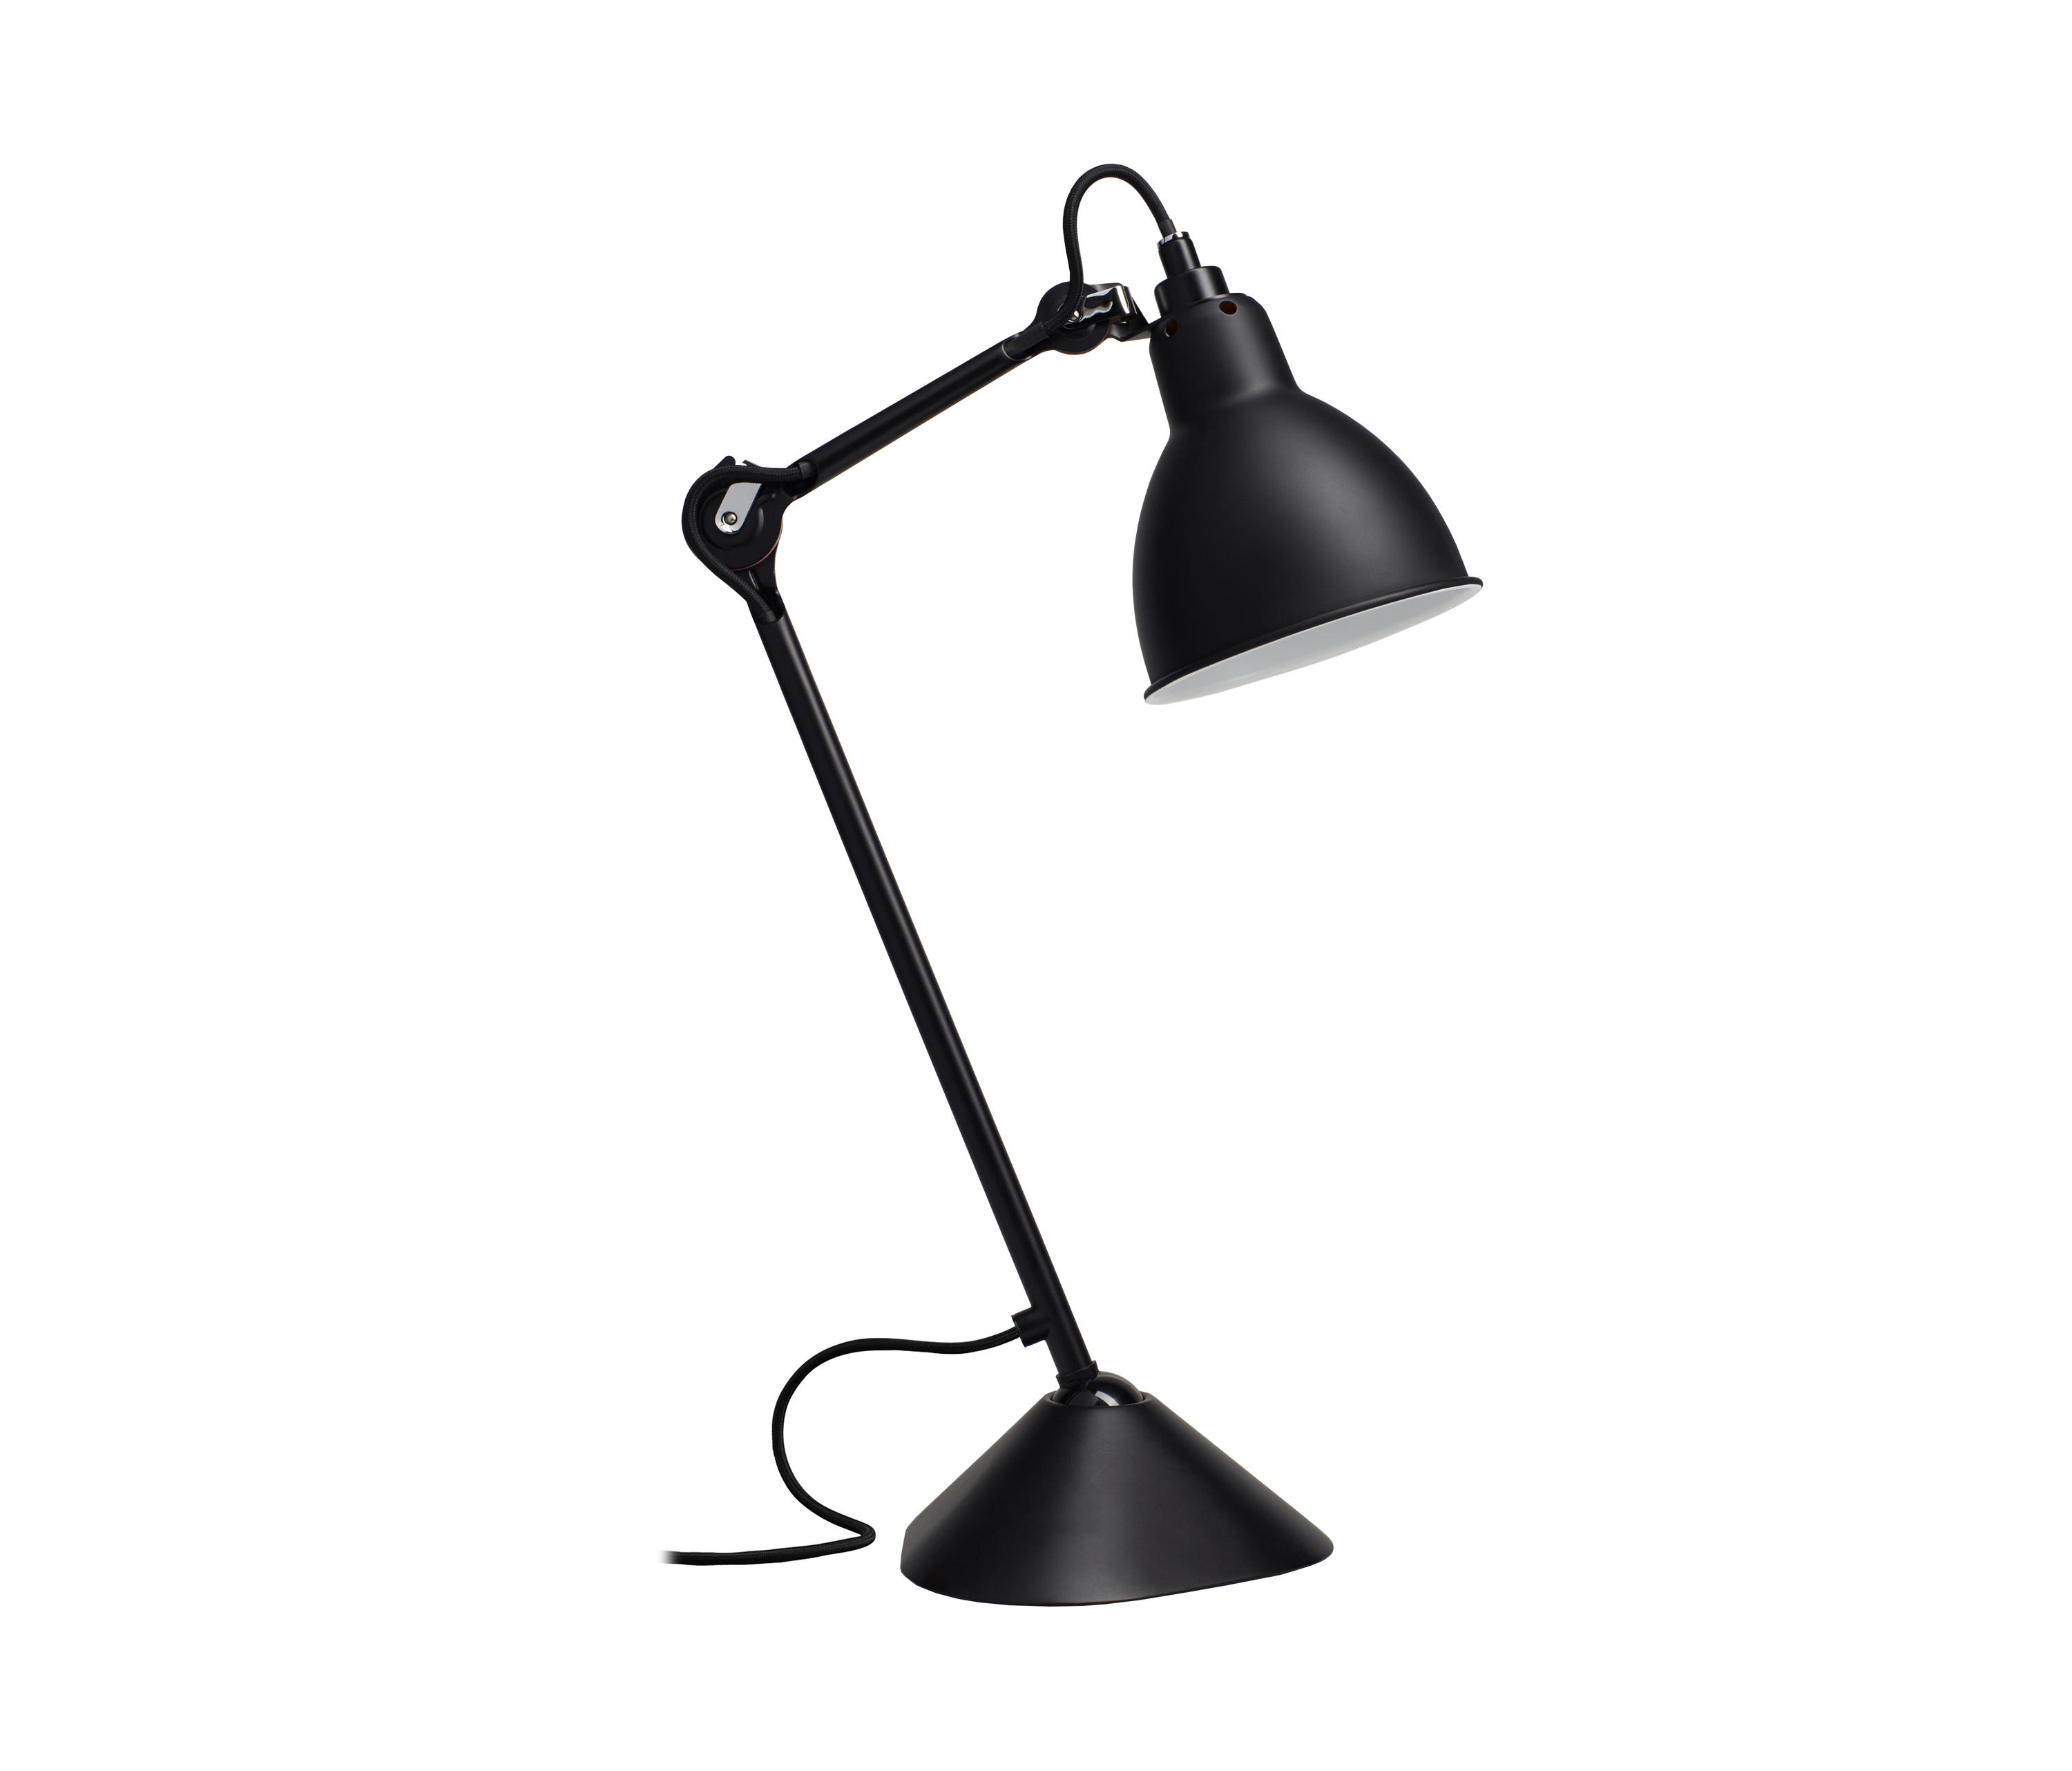 lampe gras n 205 black tischleuchten von dcw ditions architonic. Black Bedroom Furniture Sets. Home Design Ideas